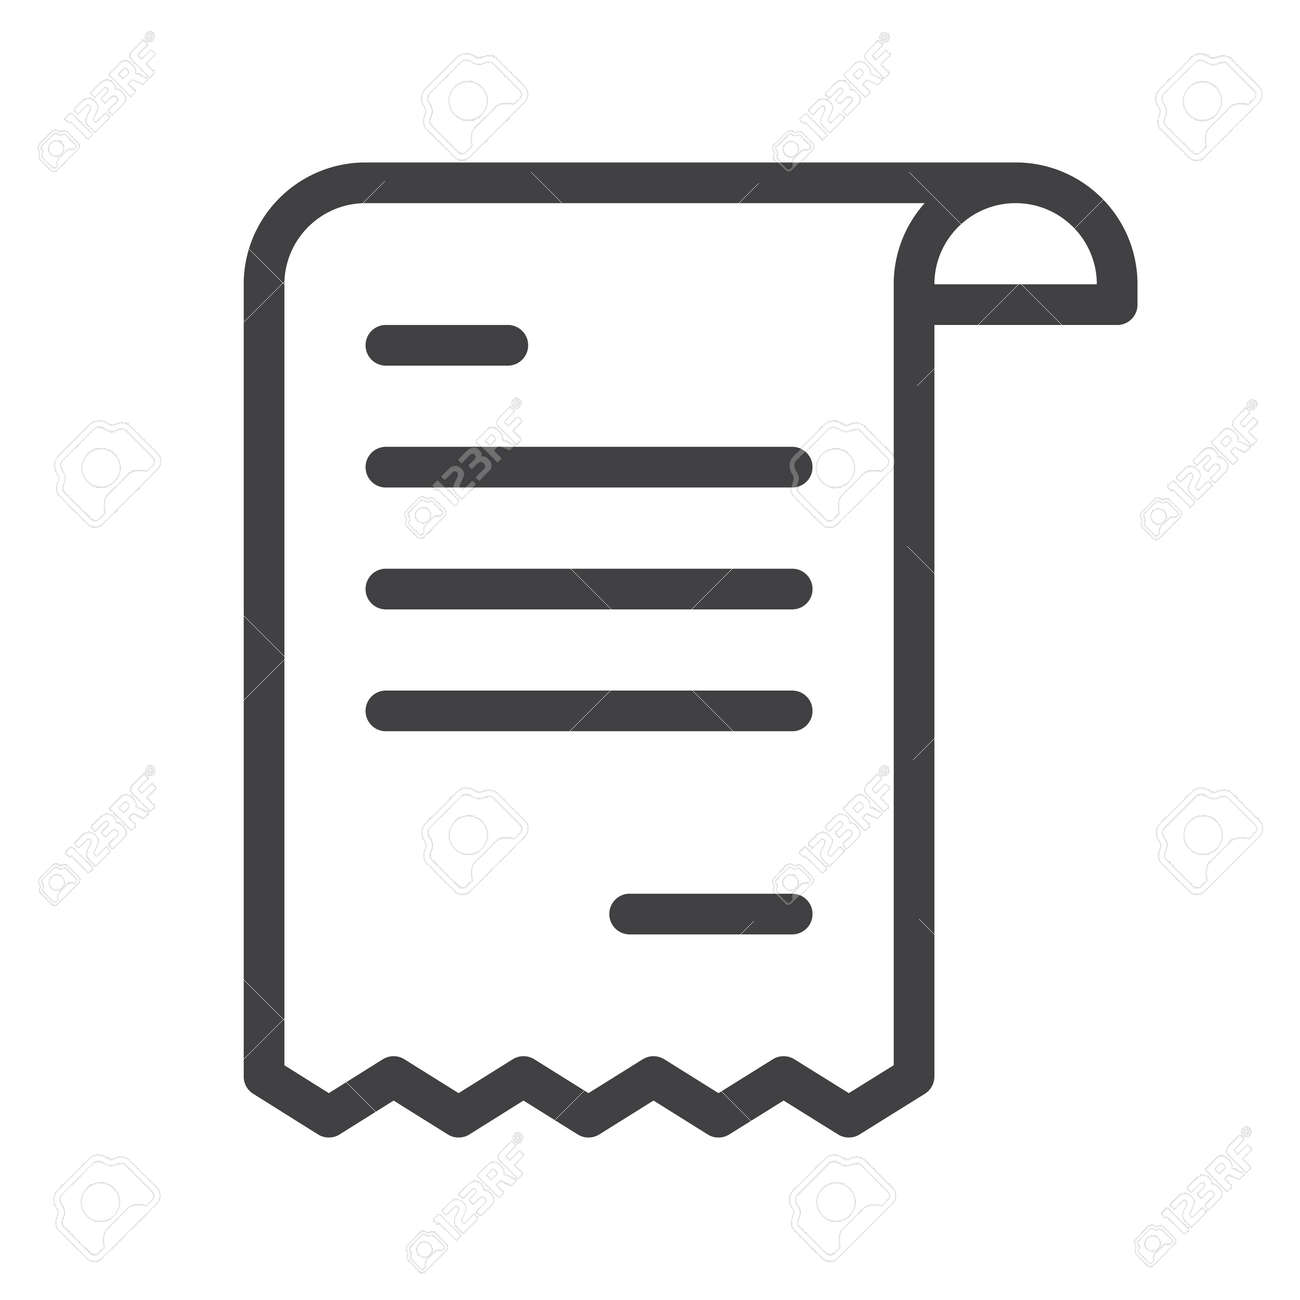 receipt line icon outline vector sign royalty free cliparts